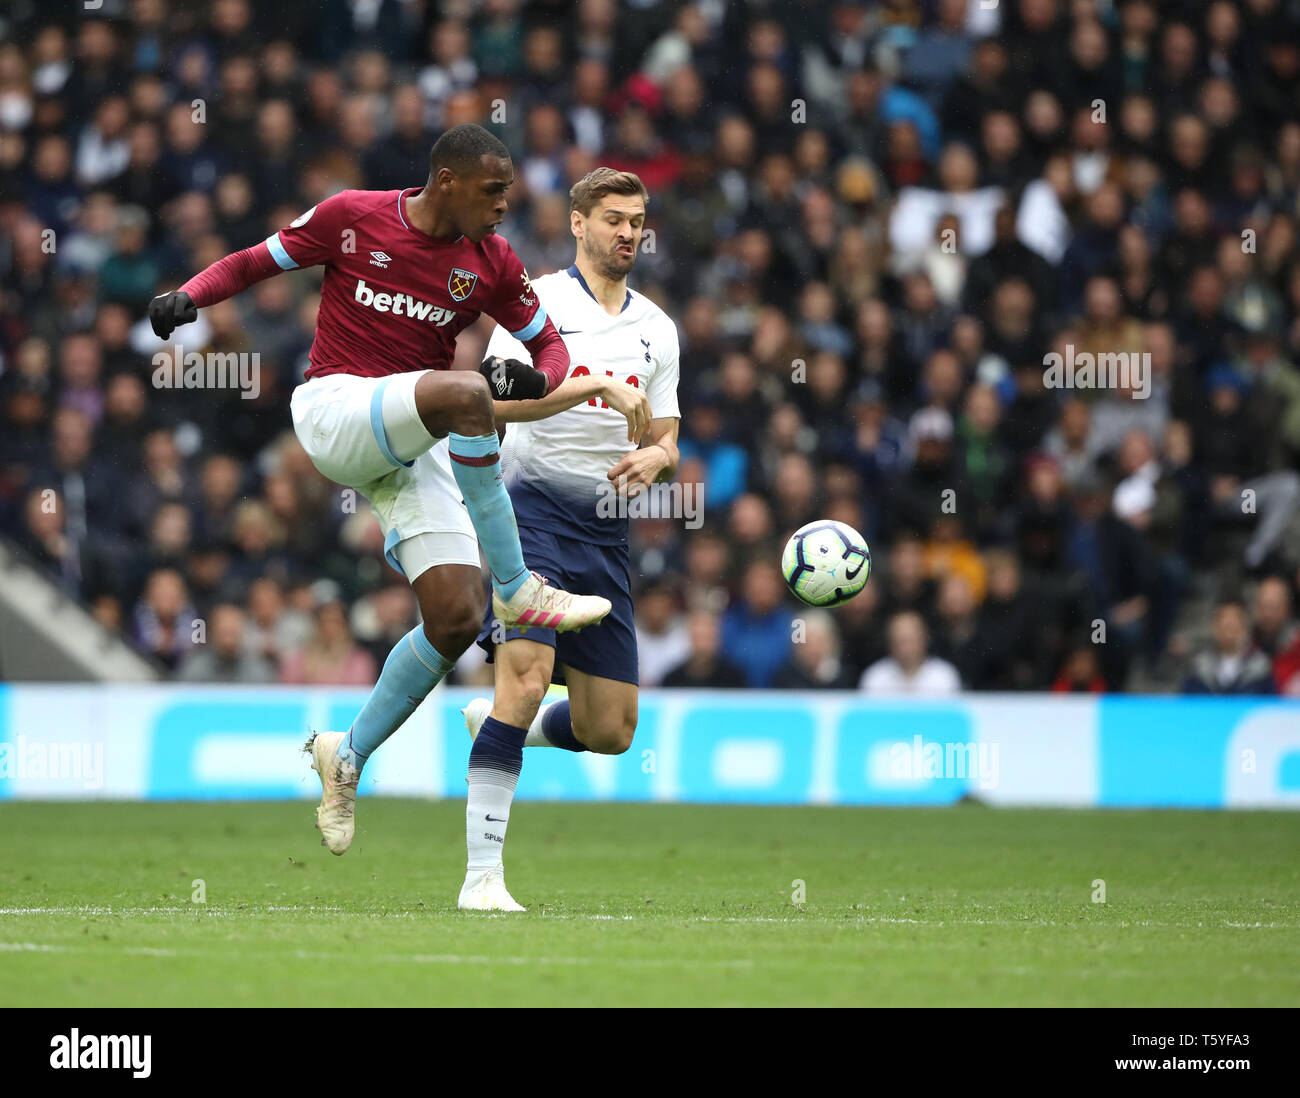 London, UK. 27th Apr 2019. Issa Diop (WHU) at the Tottenham Hotspur v West Ham United English Premier League match, at The Tottenham Hotspur Stadium, London, UK on April 27, 2019. **Editorial use only, license required for commercial use. No use in betting, games or a single club/league/player publications** Credit: Paul Marriott/Alamy Live News - Stock Image